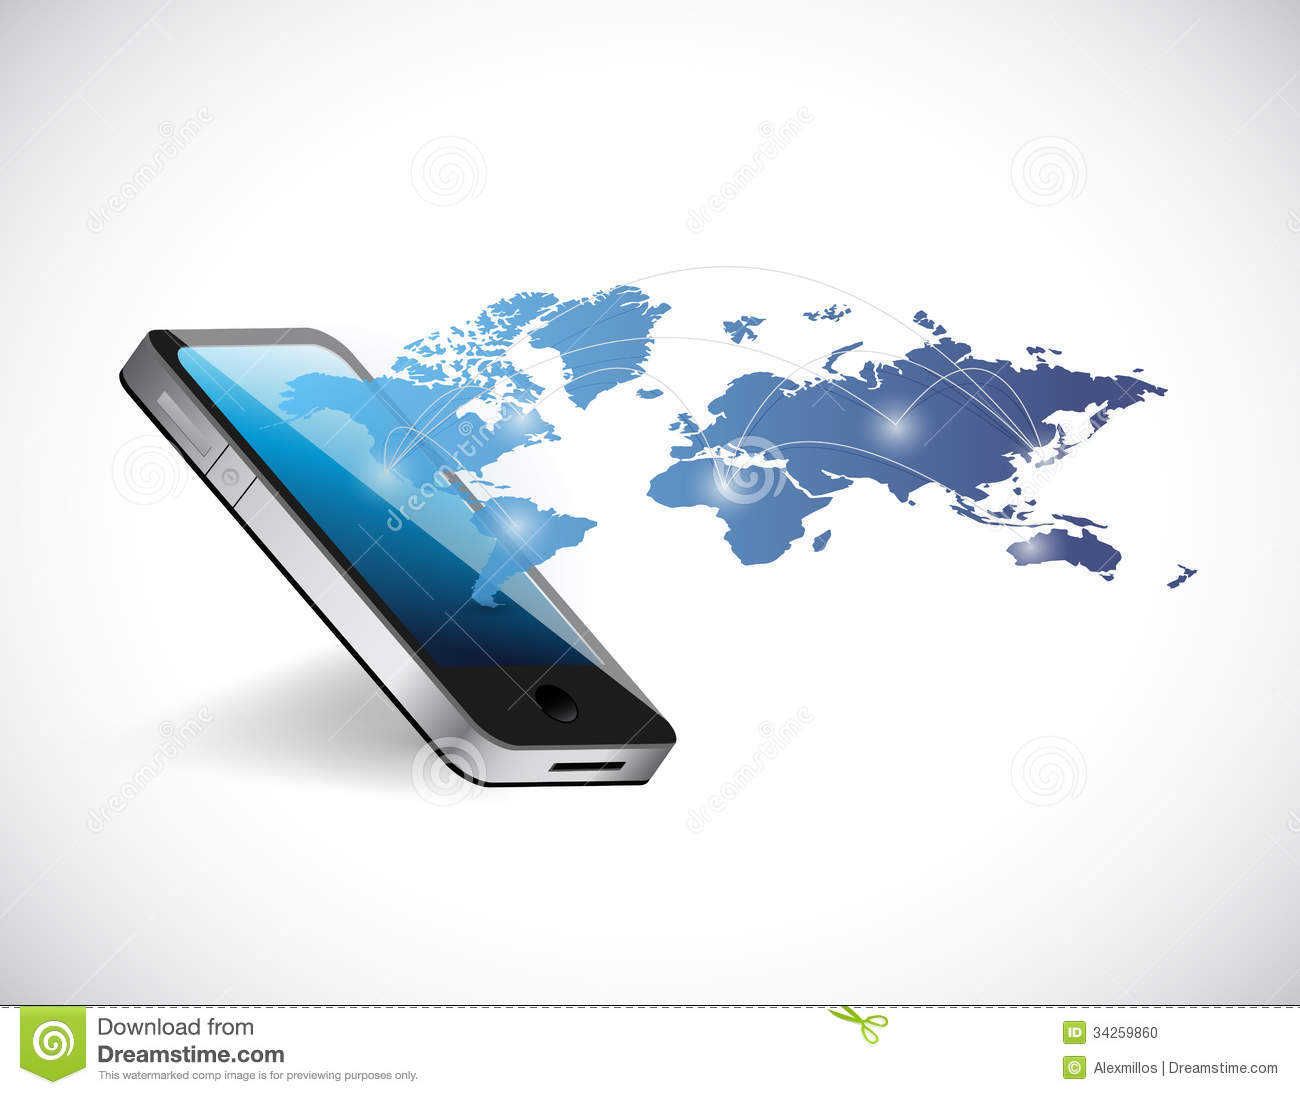 Phone and world map illustration design stock illustration phone world map network illustration design stock photo gumiabroncs